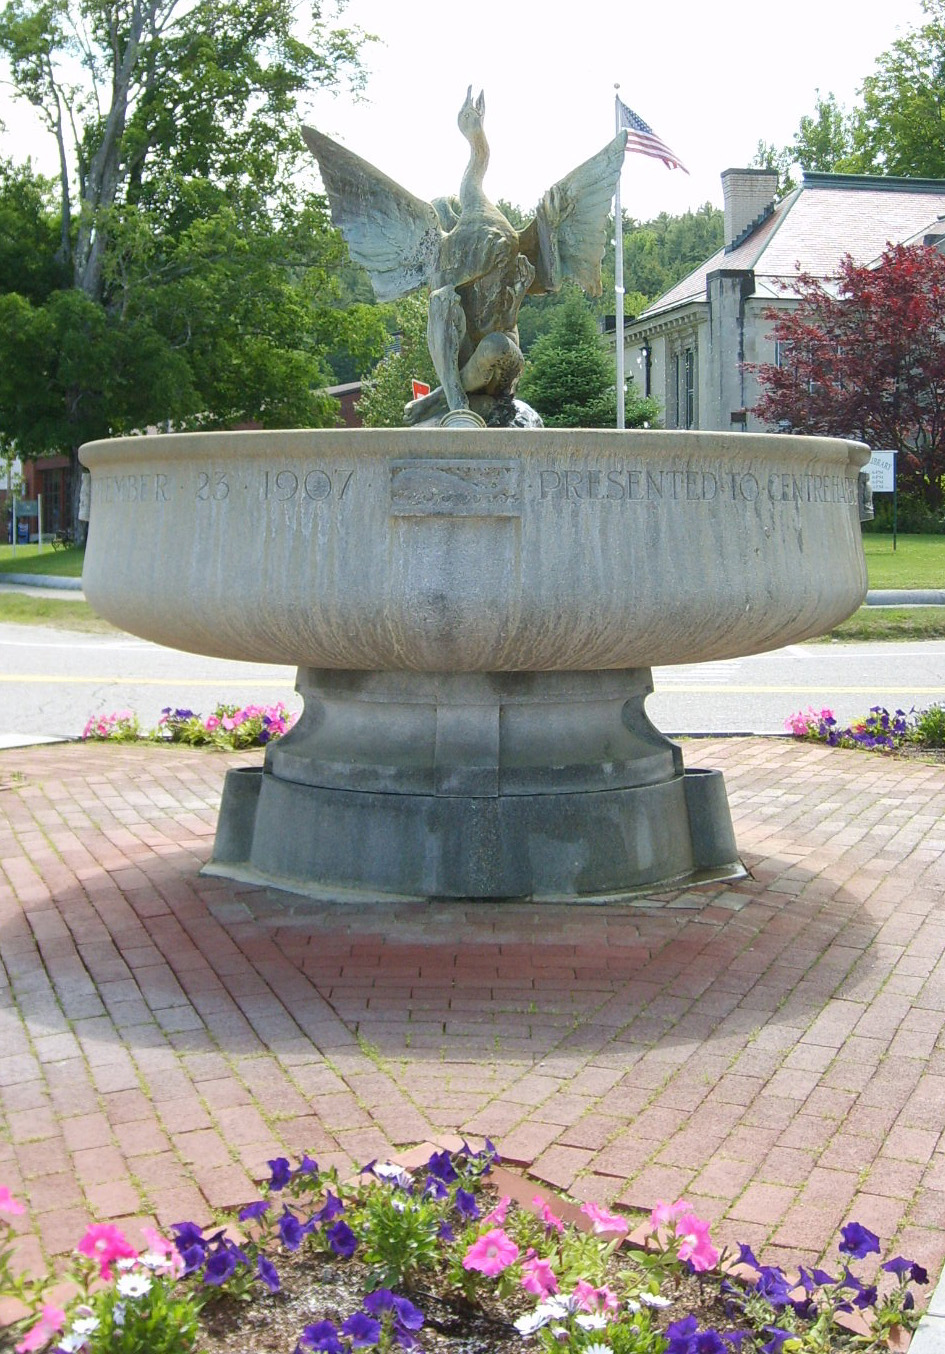 A Photo of the Iconic Fountain in the Historic District, by SatyrTN in June of 2007, Creative Commons Licensed Attribution